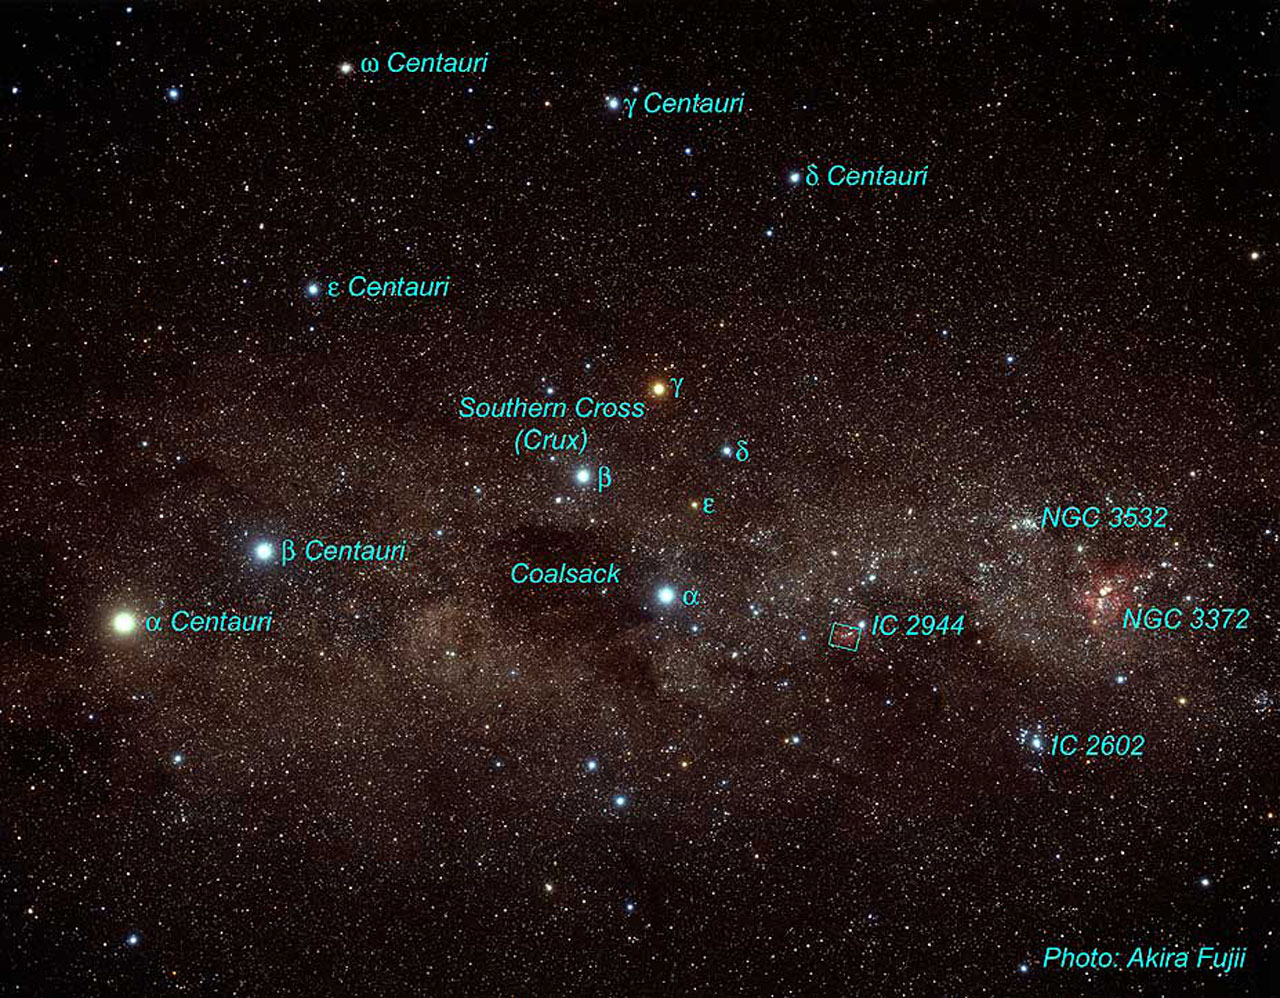 The Southern Cross Constellation